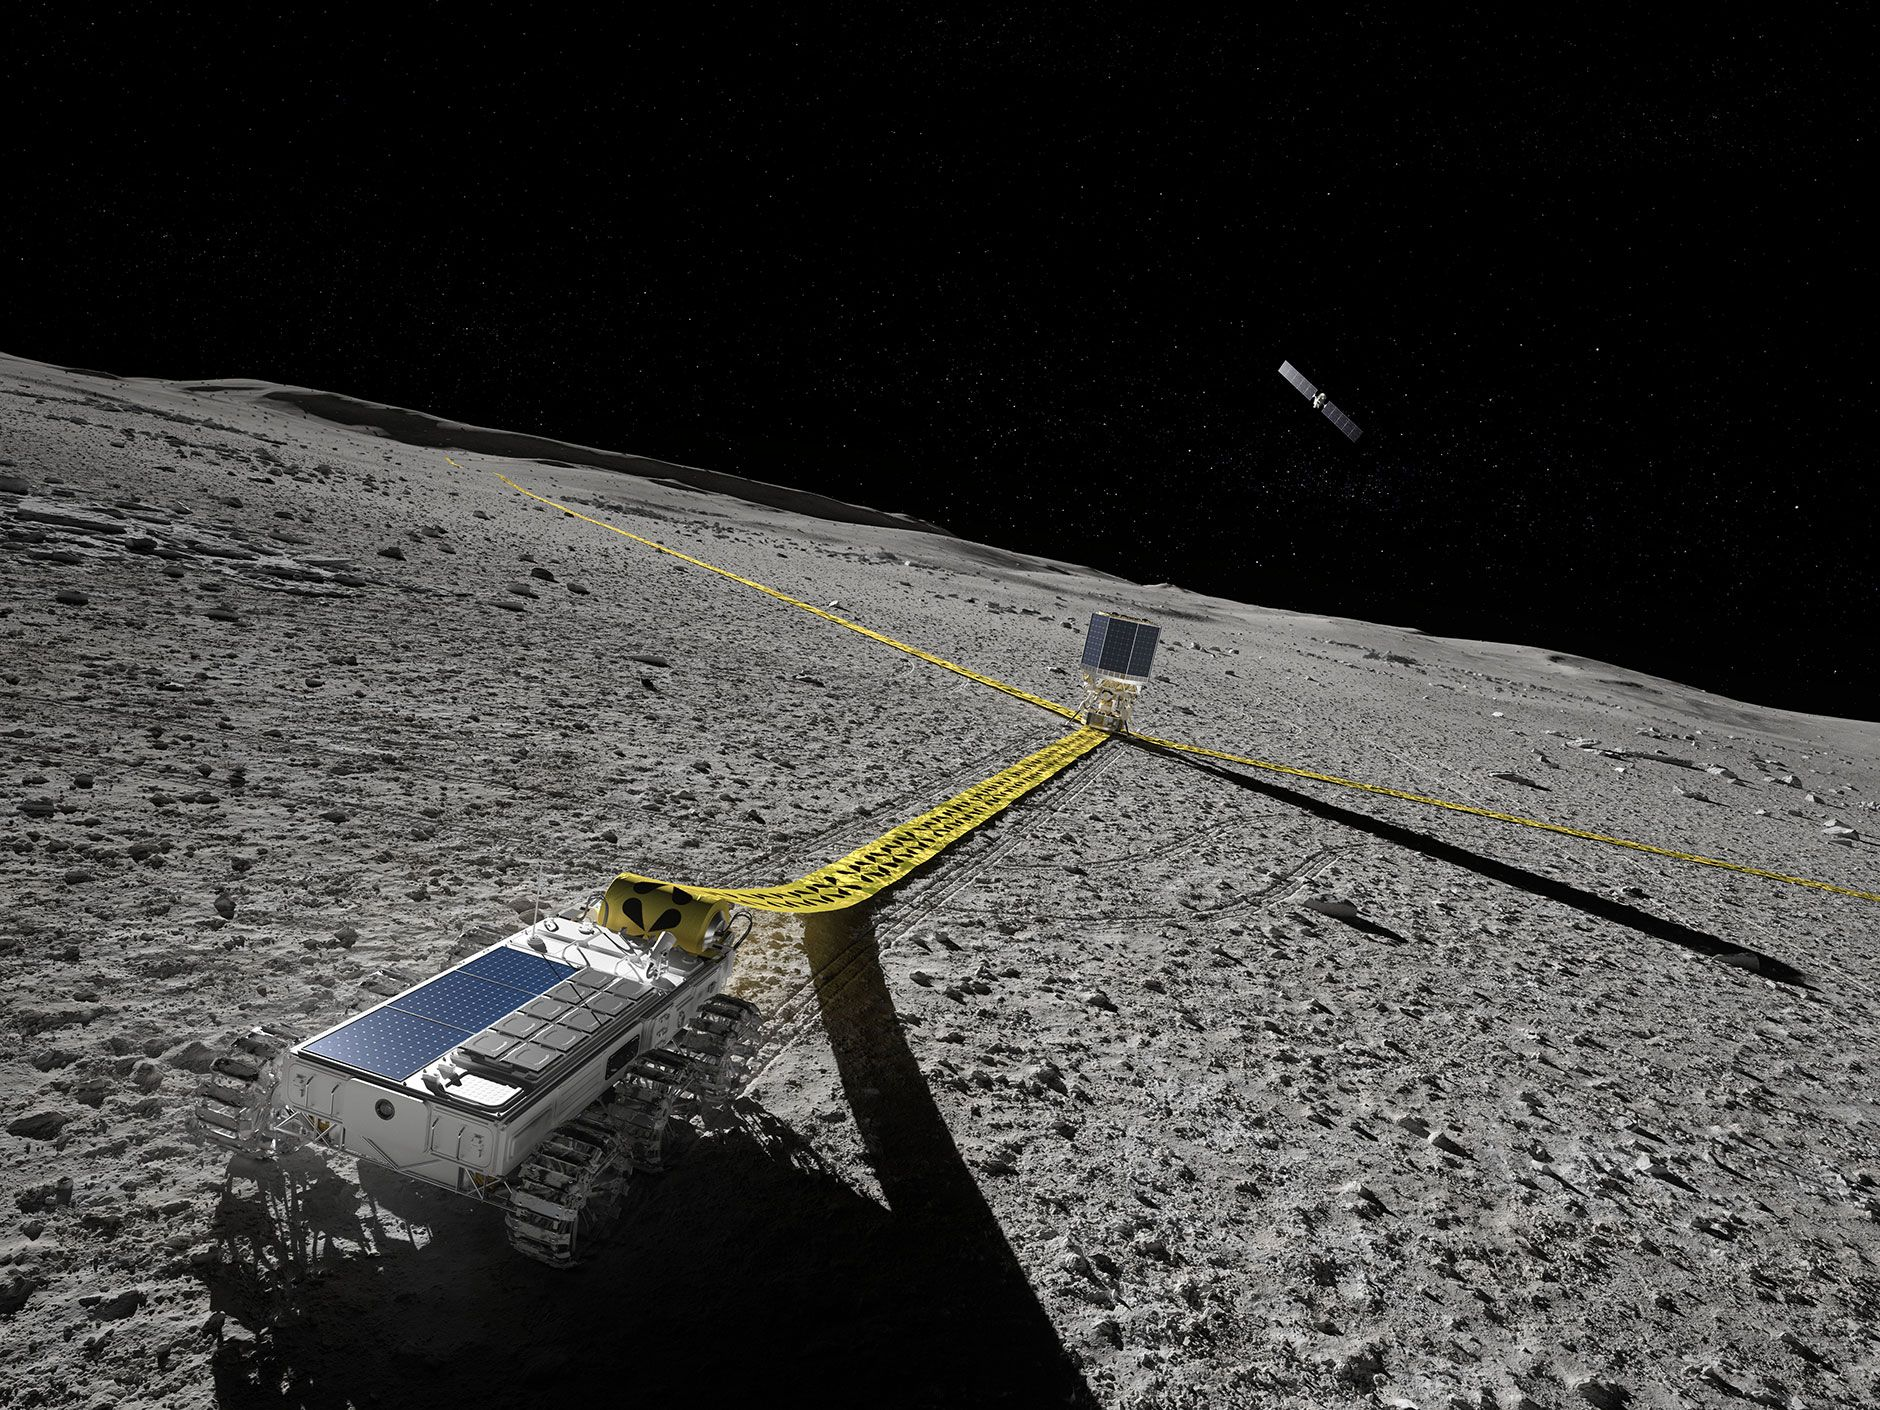 Illustration of a rover laying down flexible antenna on the lunar surface.